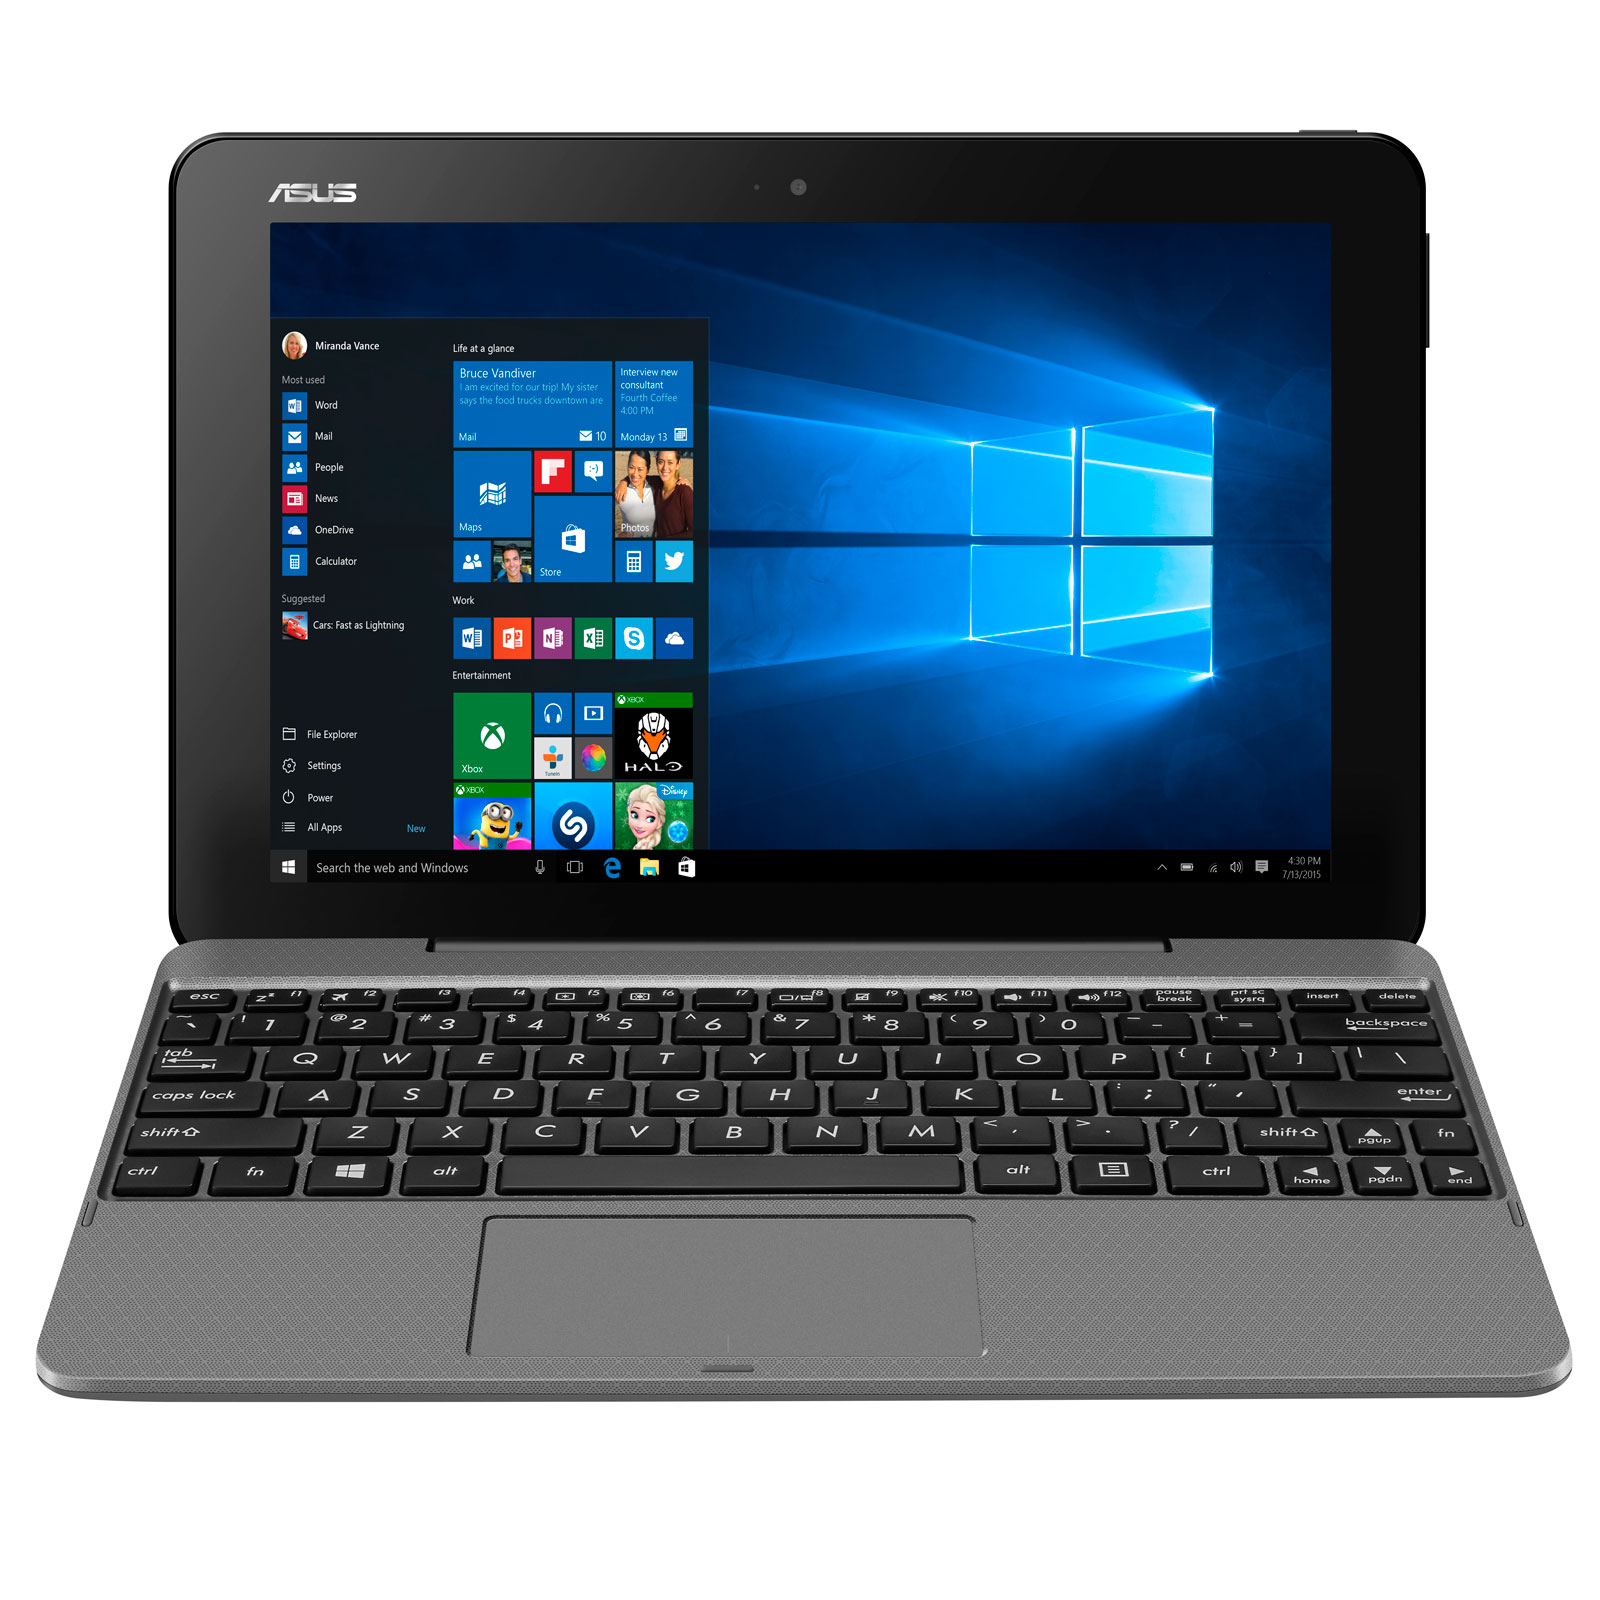 Asus T101HA-GR029RB - PC portable Asus - Cybertek.fr - 4